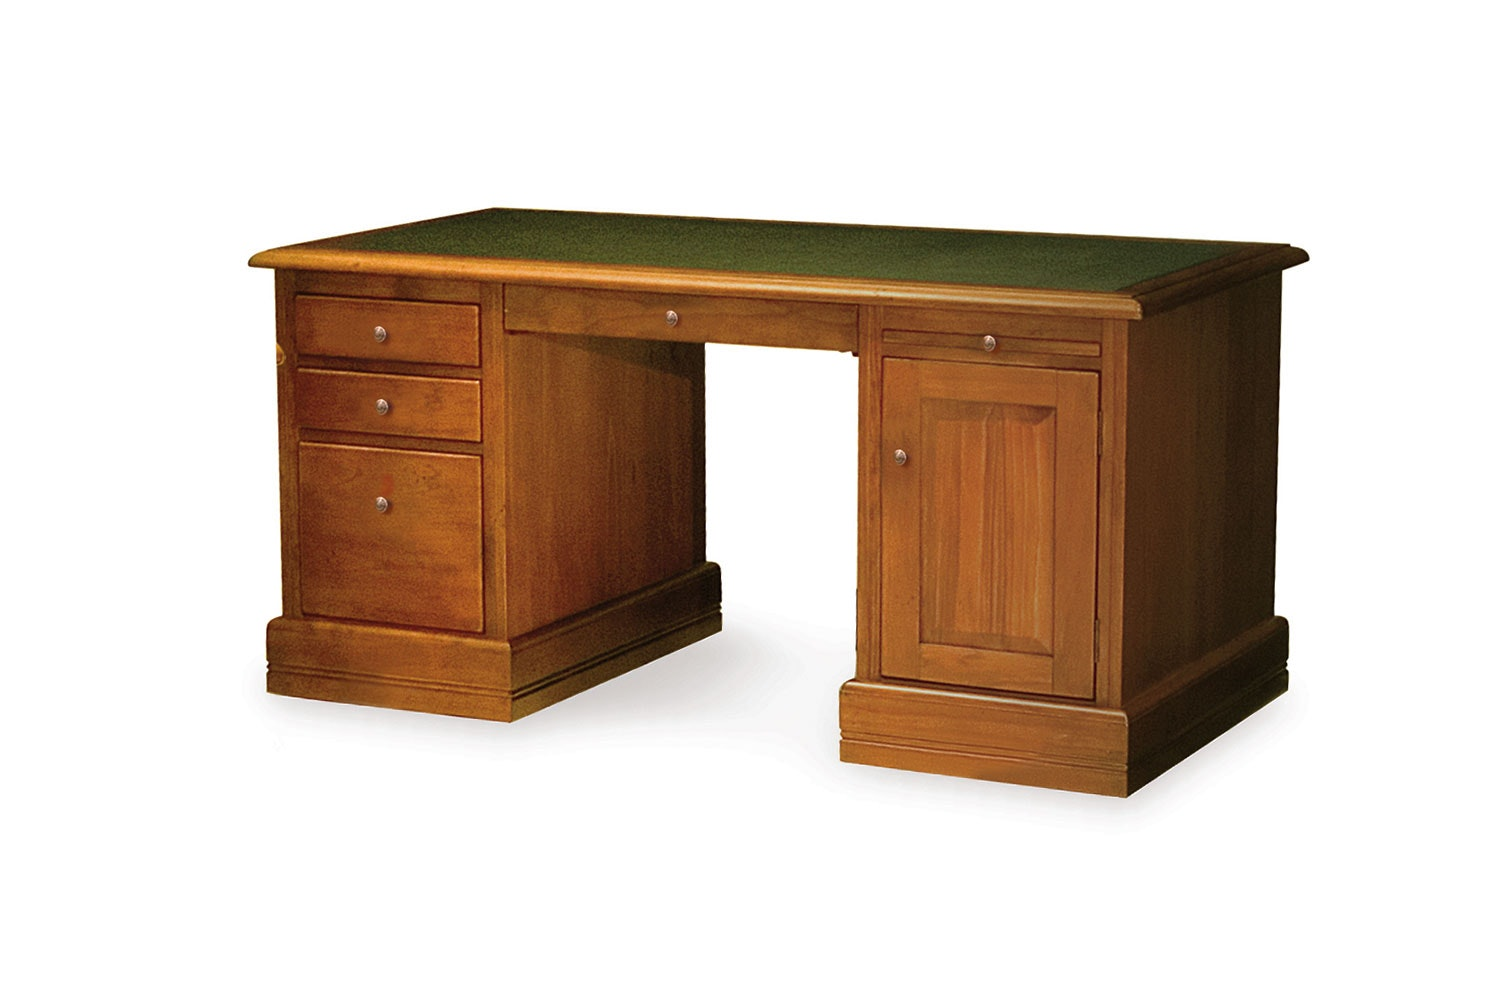 Waihi Presidents Desk - Inlaid Top by Coastwood Furniture